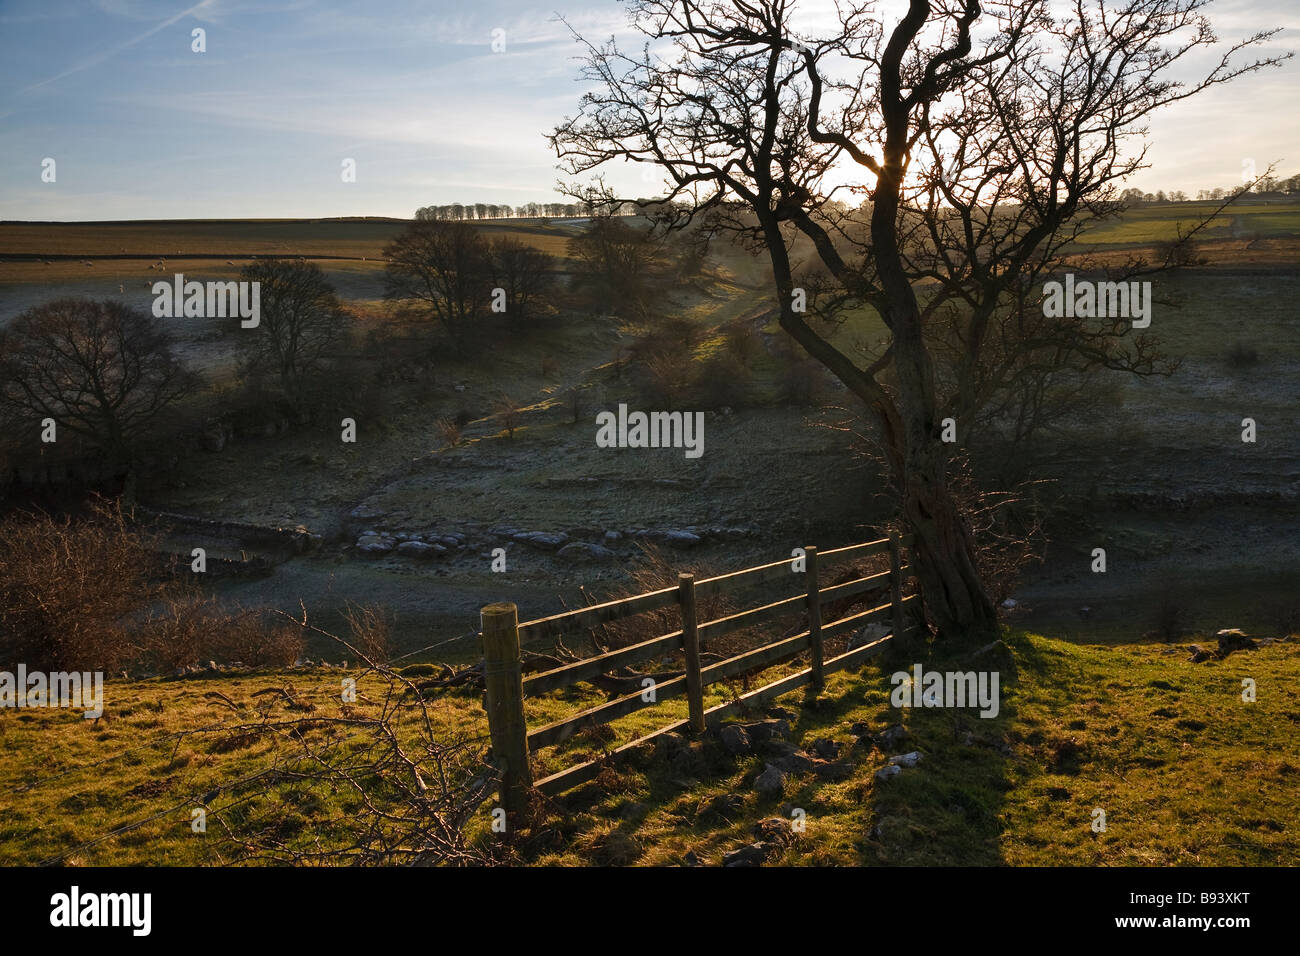 View across Lathkill Dale to Fern Dale Peak District National Park Derbyshire England UK - Stock Image